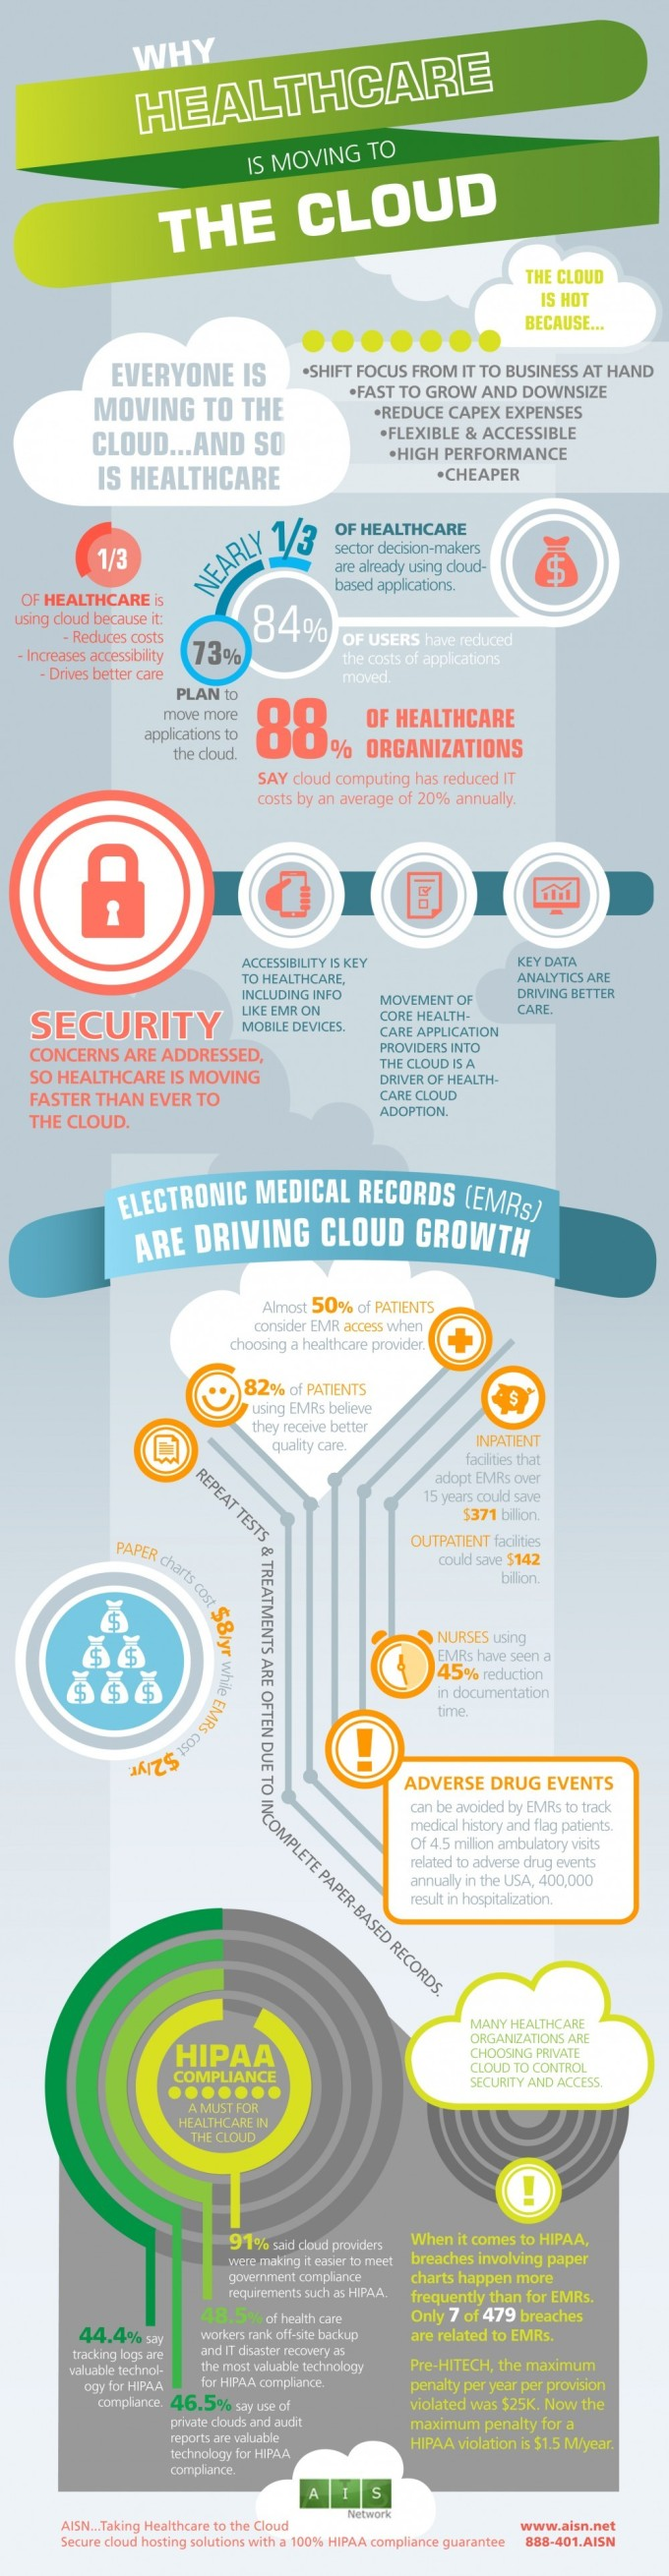 Why-Healthcare-Is-Moving-to-the-Cloud-Infographic